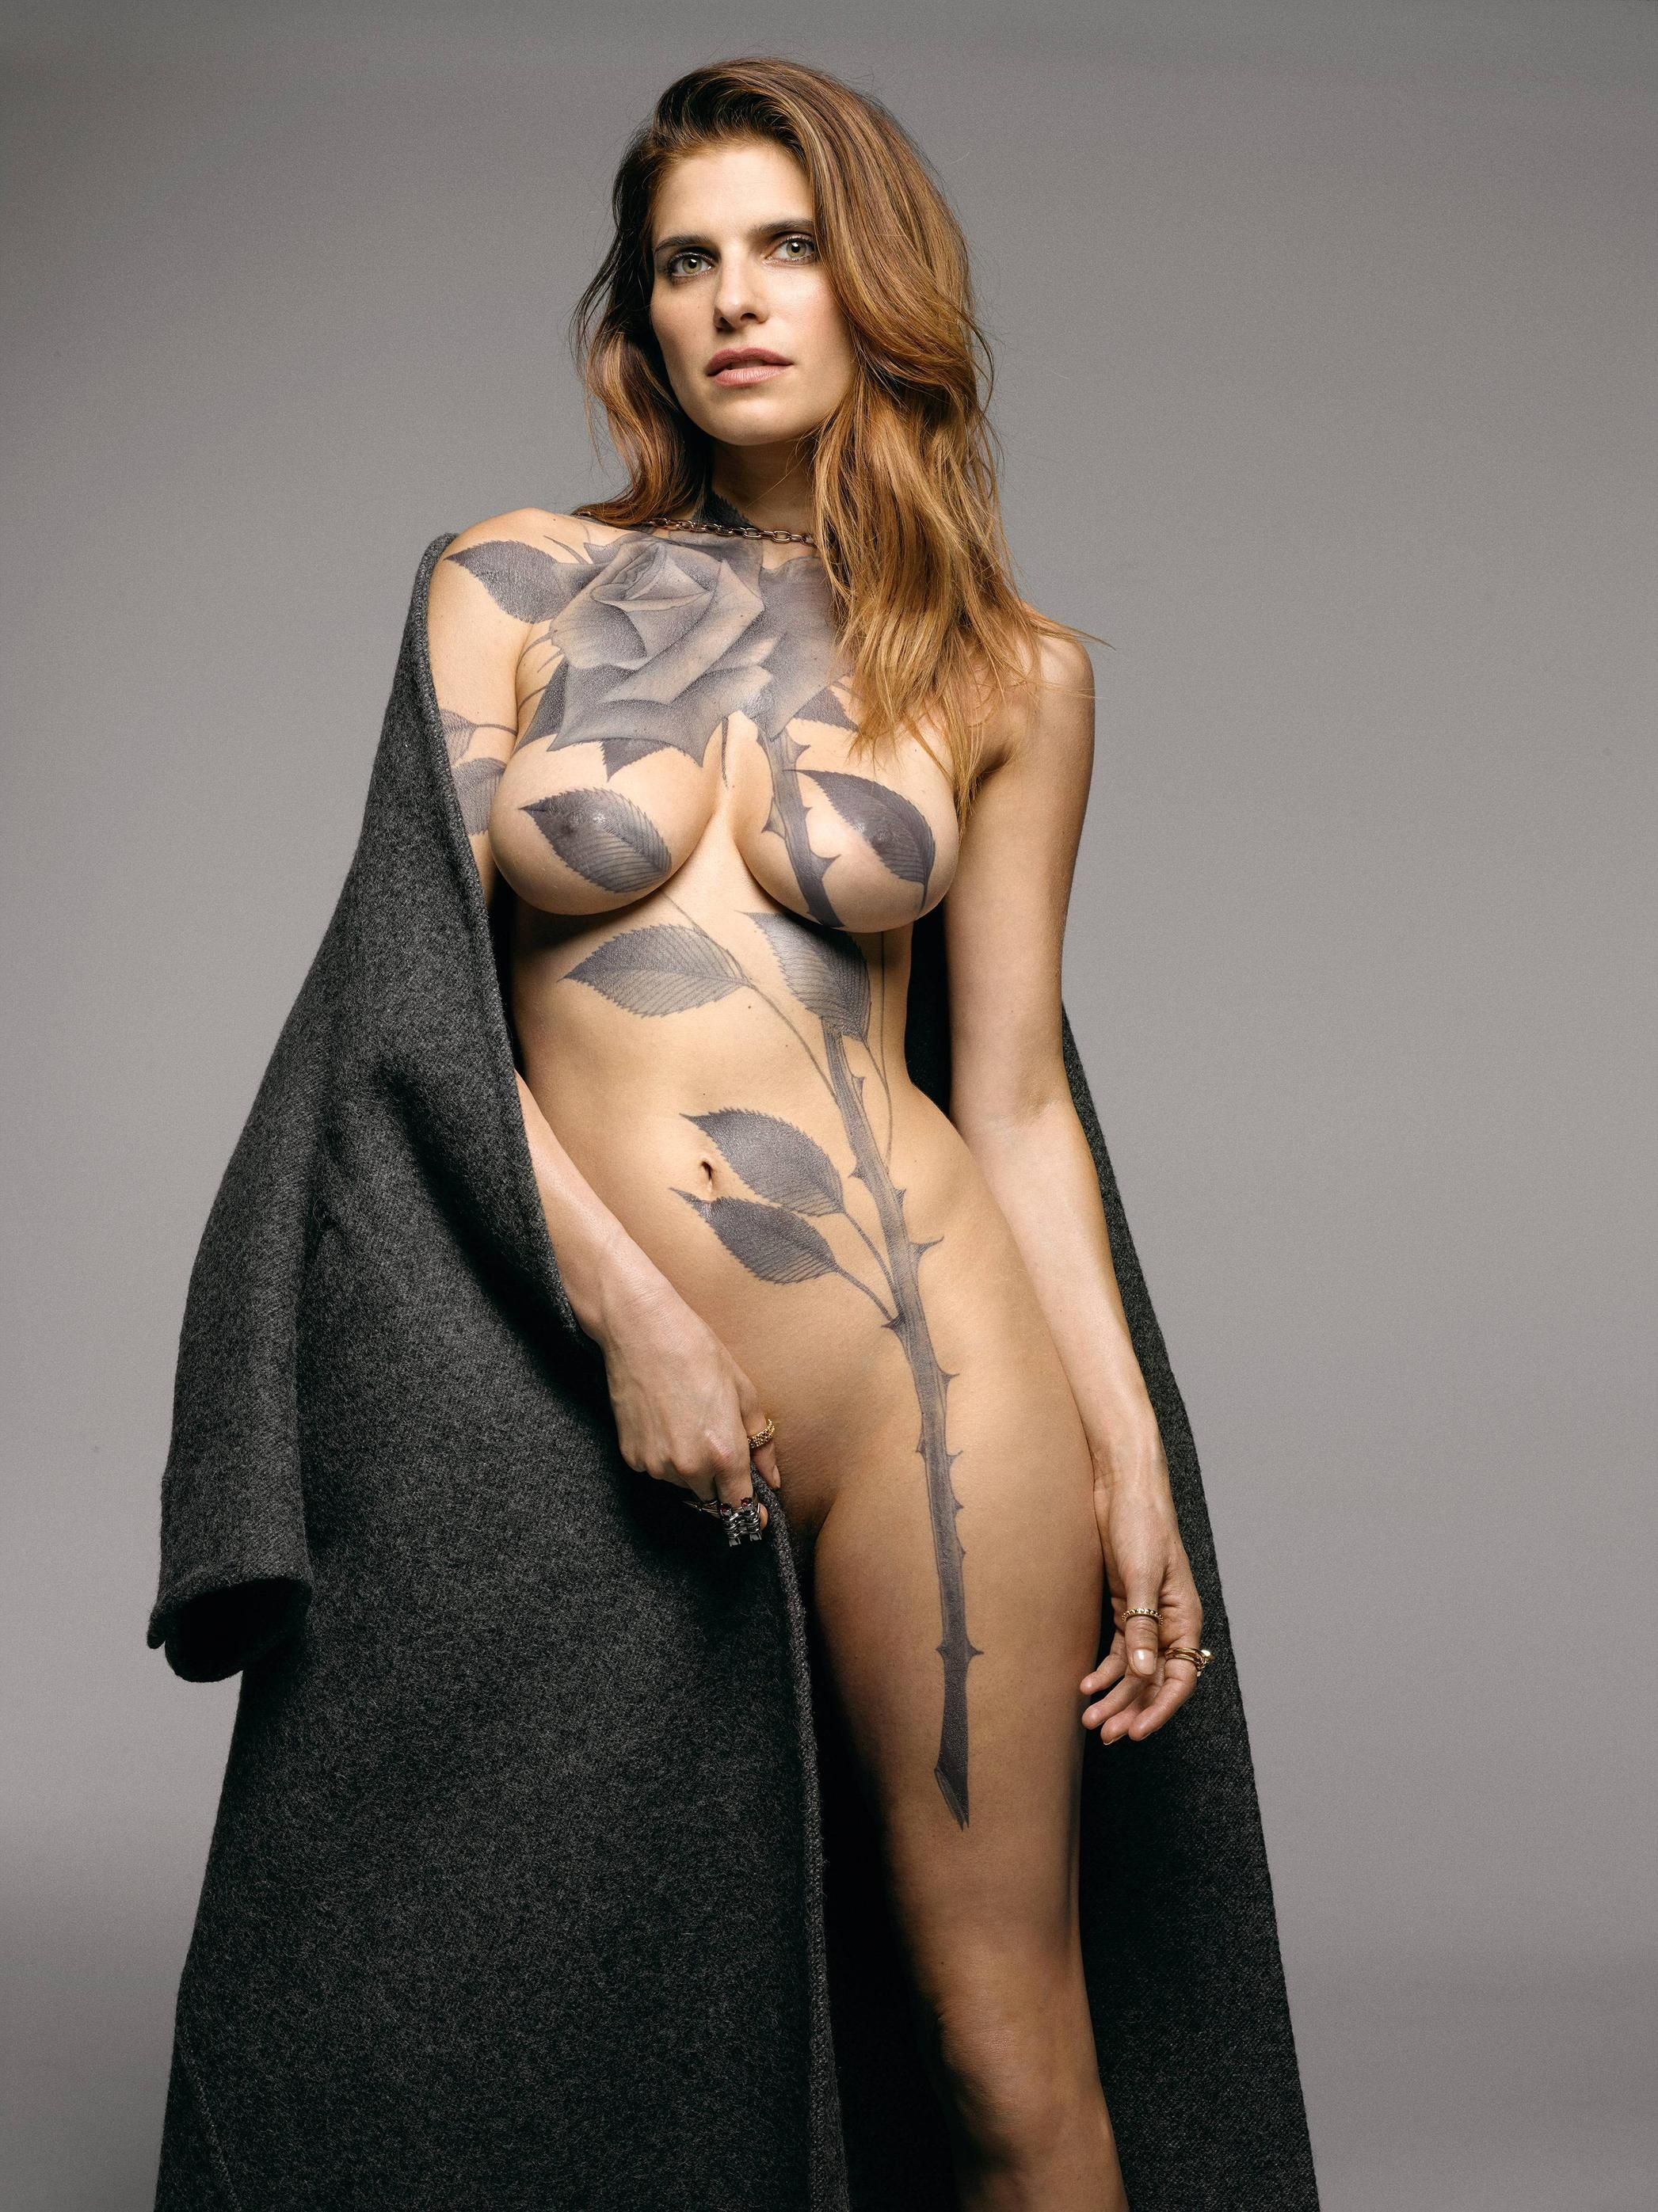 [Celeb Porn] Lake Bell. Repost just because